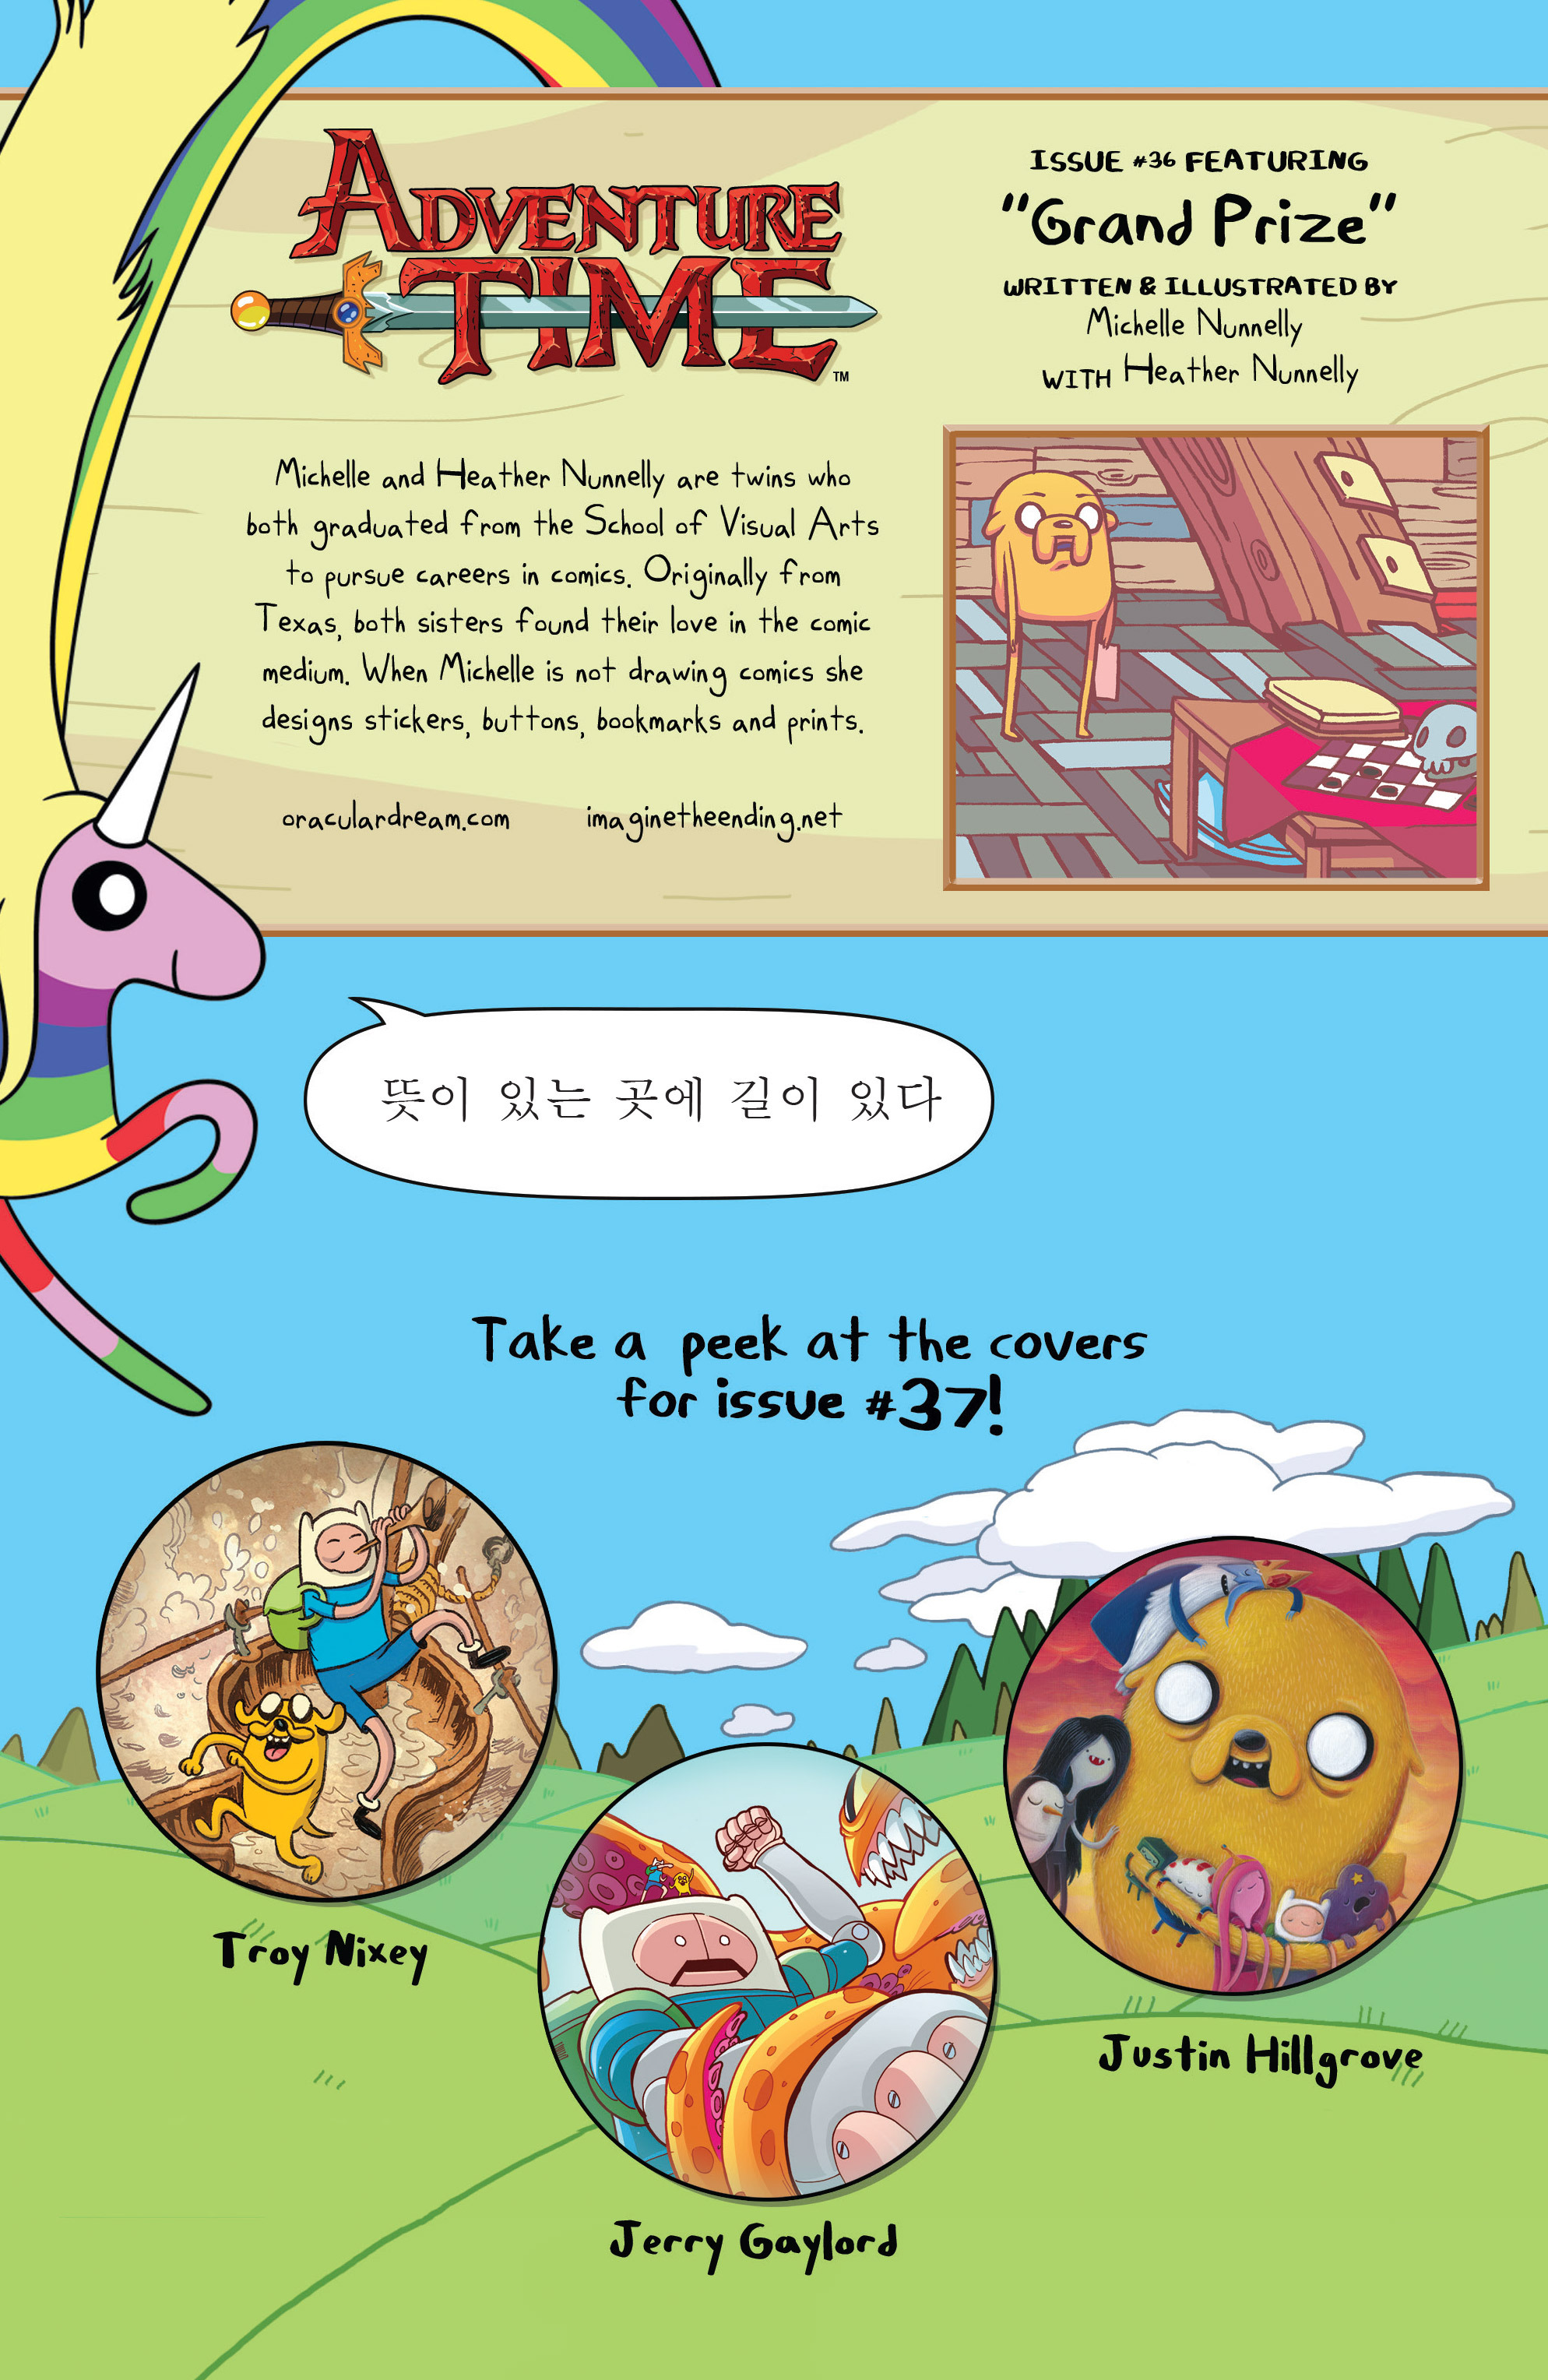 Read online Adventure Time comic -  Issue #36 - 25